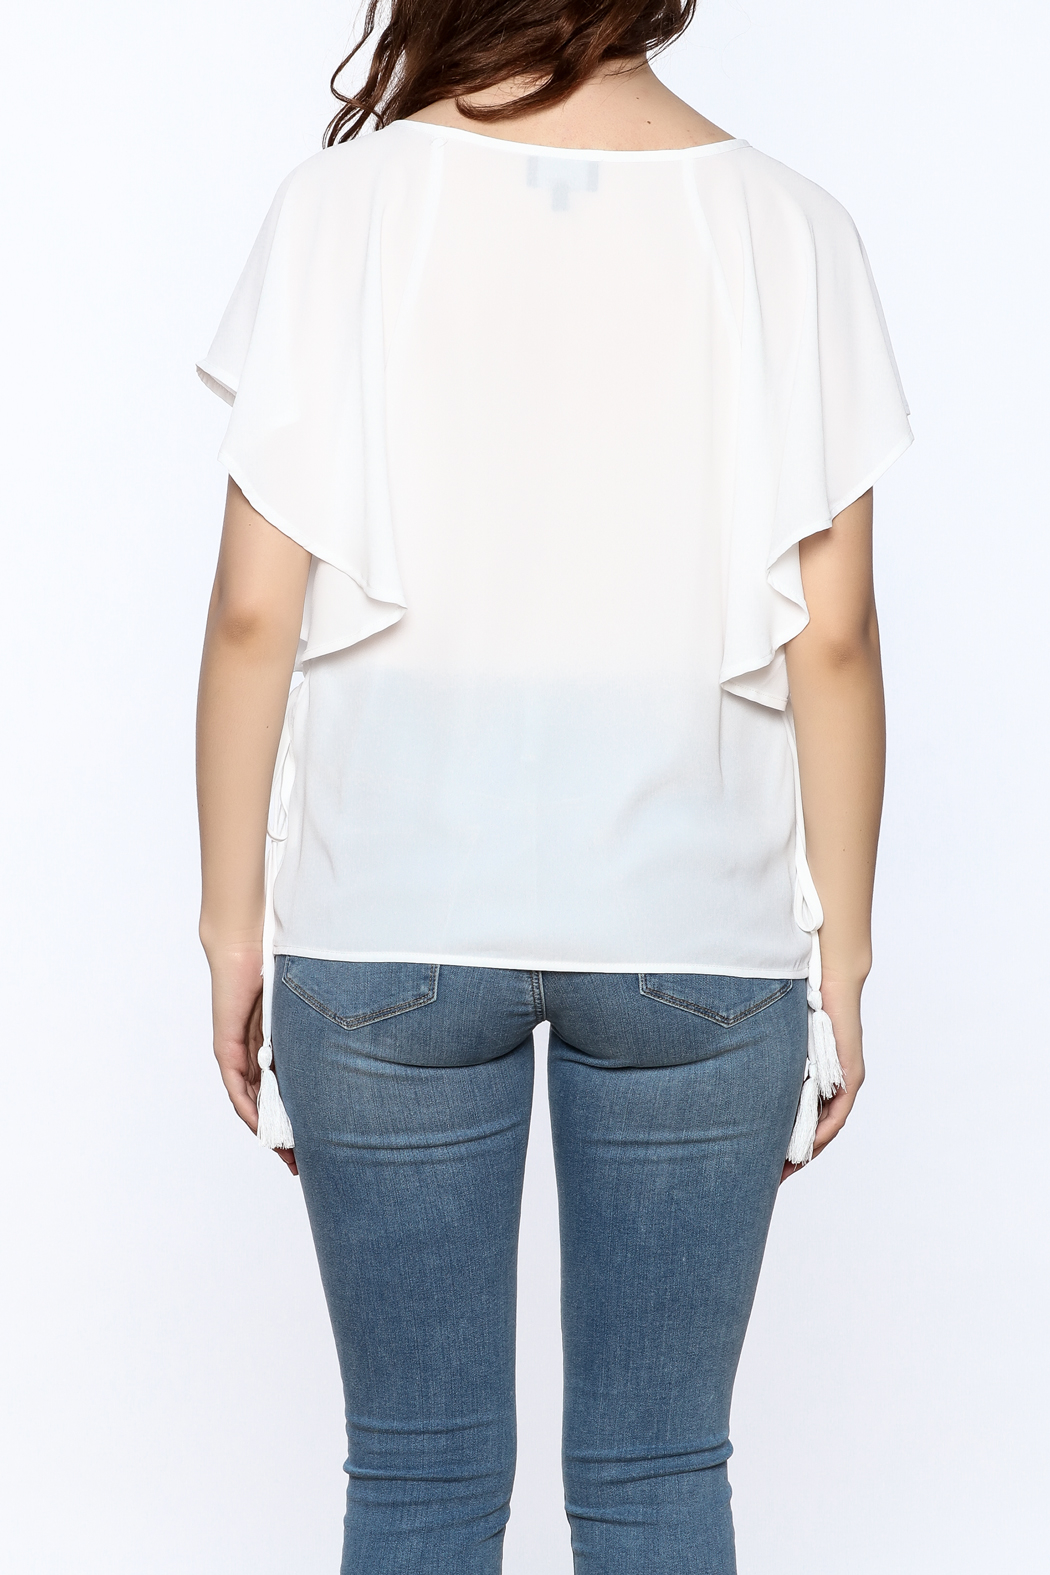 Lumiere White Tassel Top - Back Cropped Image